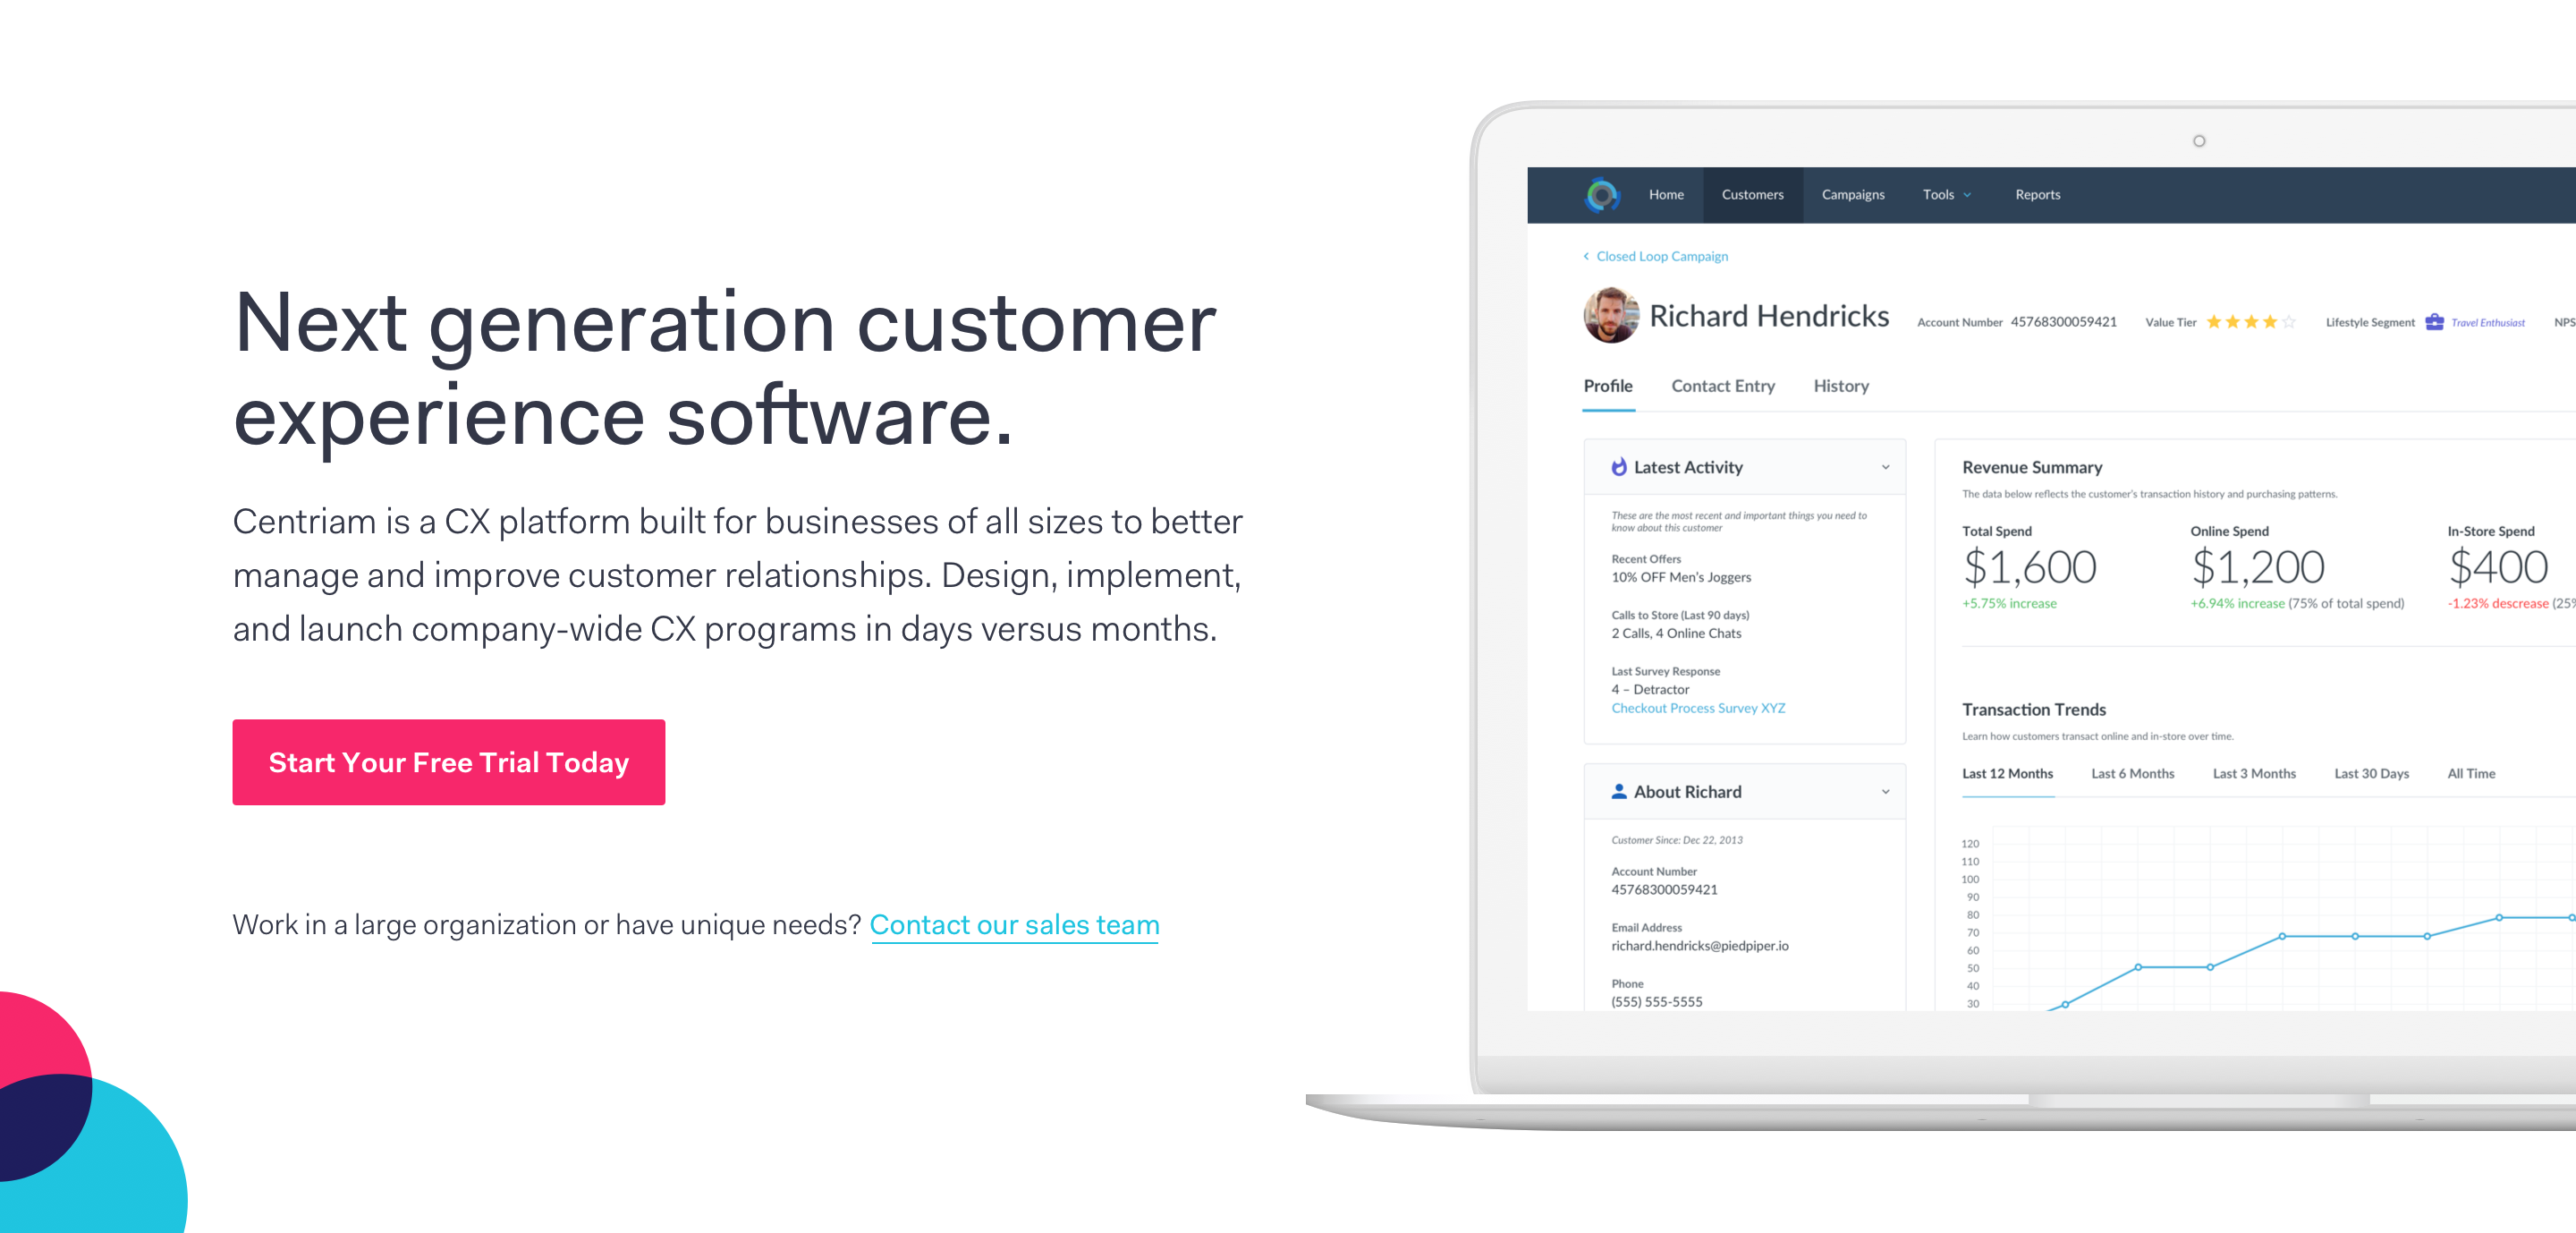 Centriam Customer Experience Software